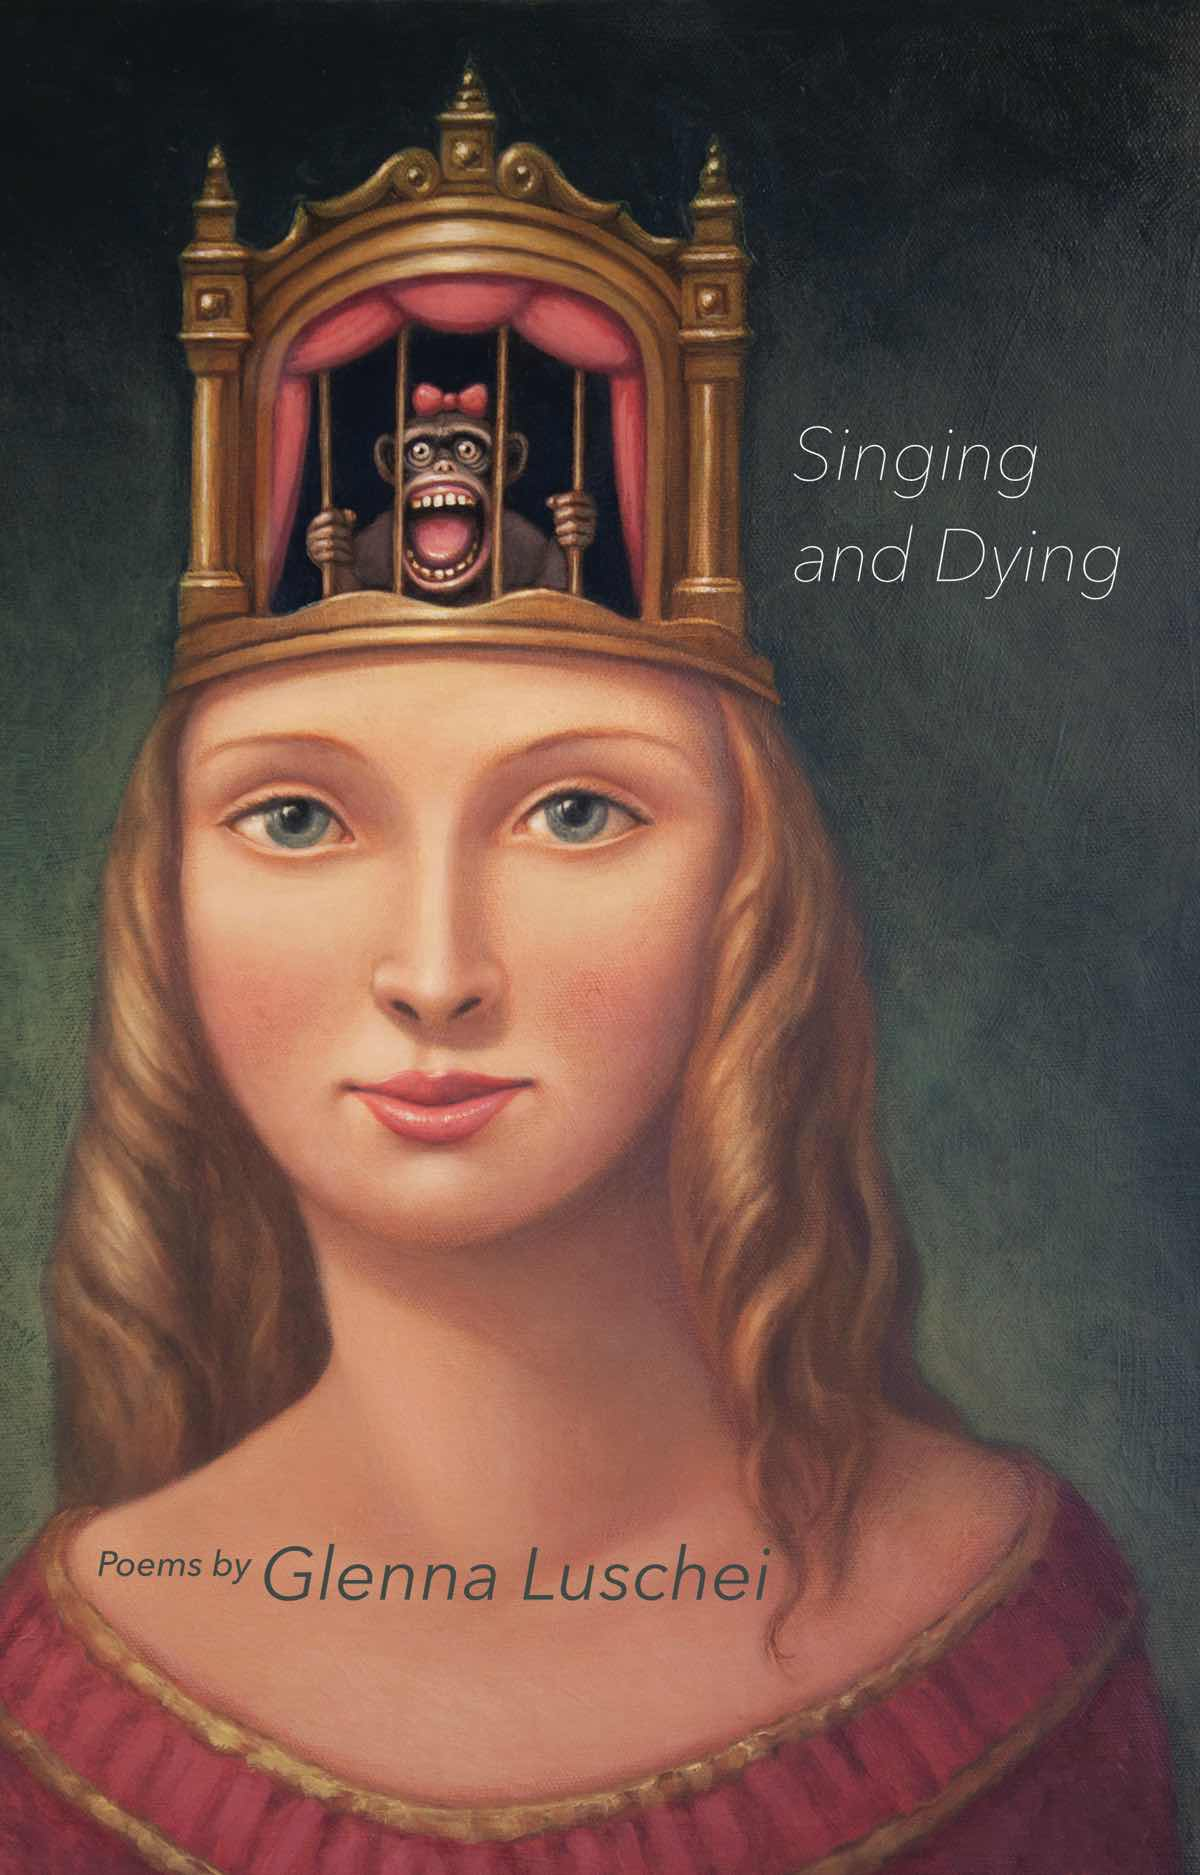 Singing and Dying